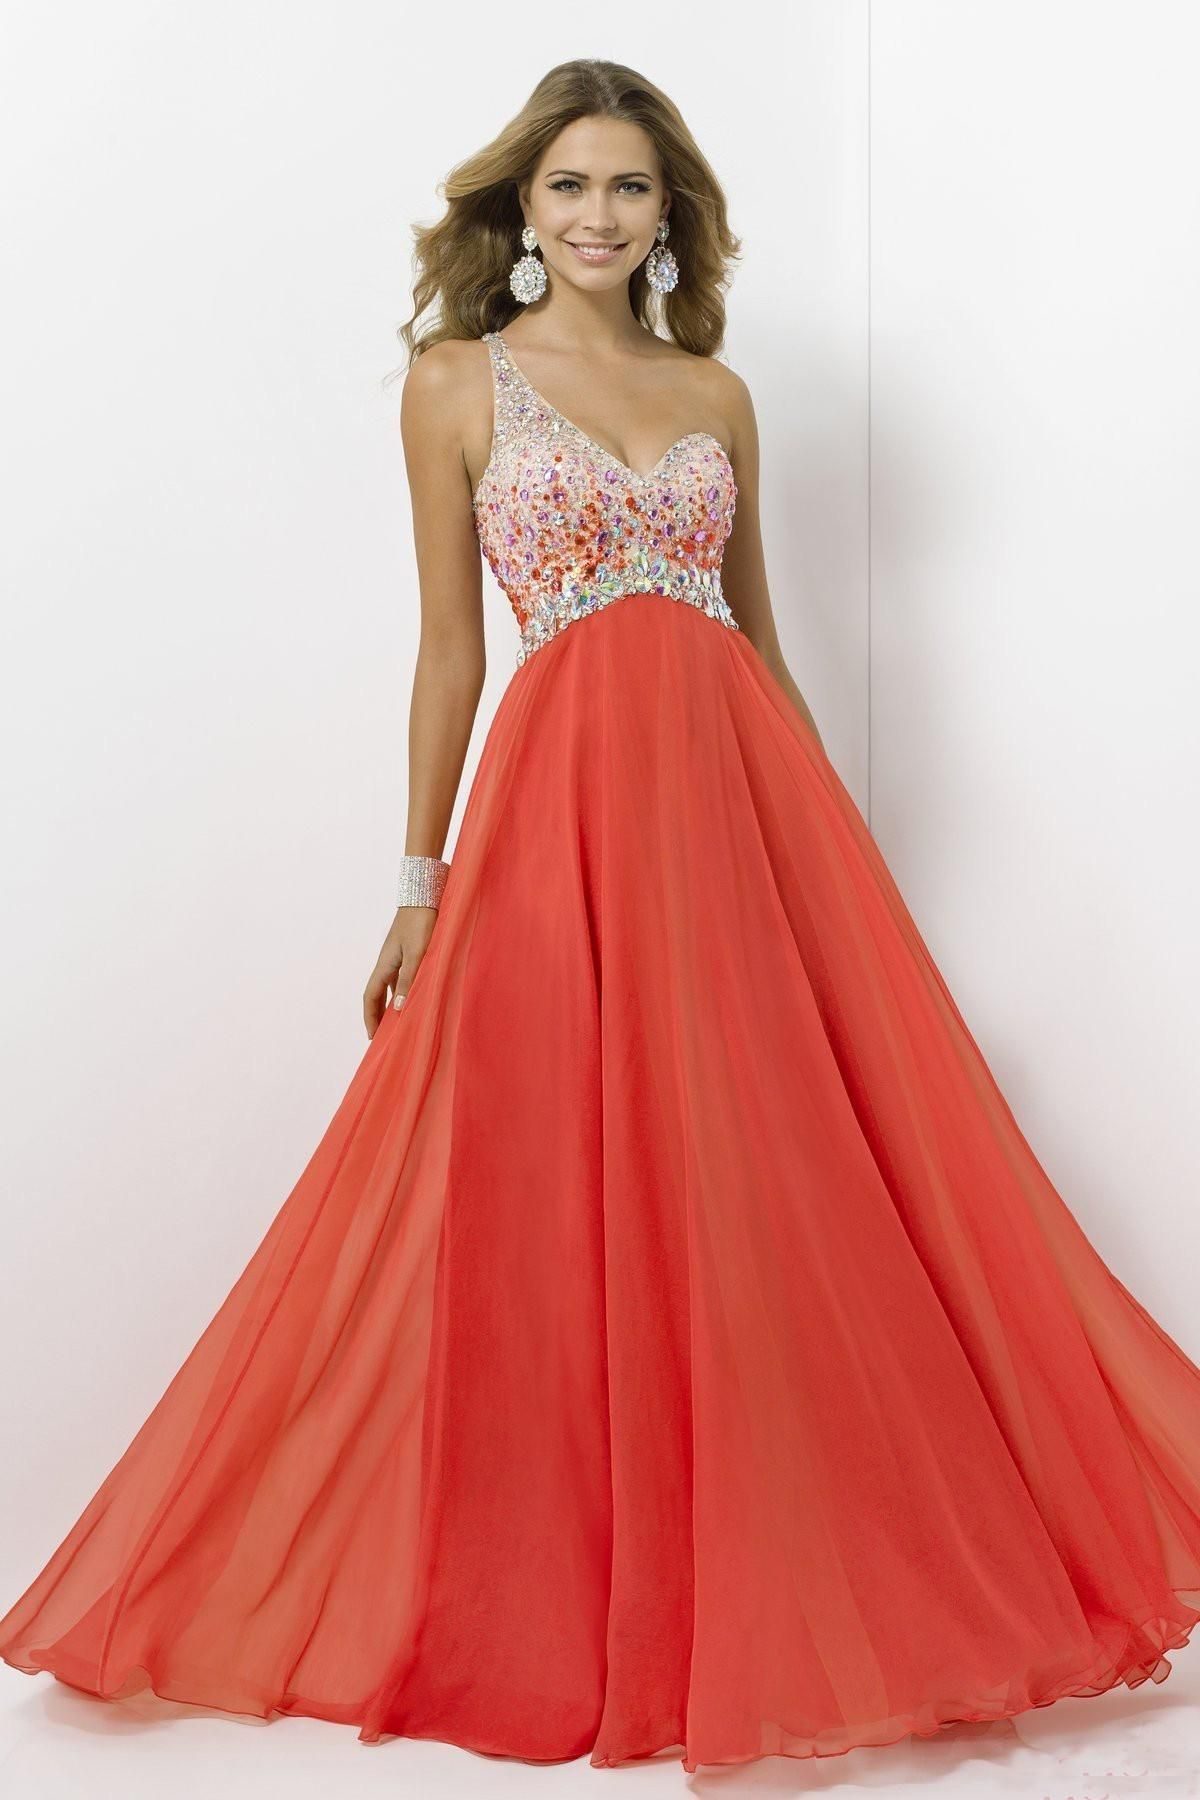 Oneshoulder beaded chiffon aline floorlength prom dress with